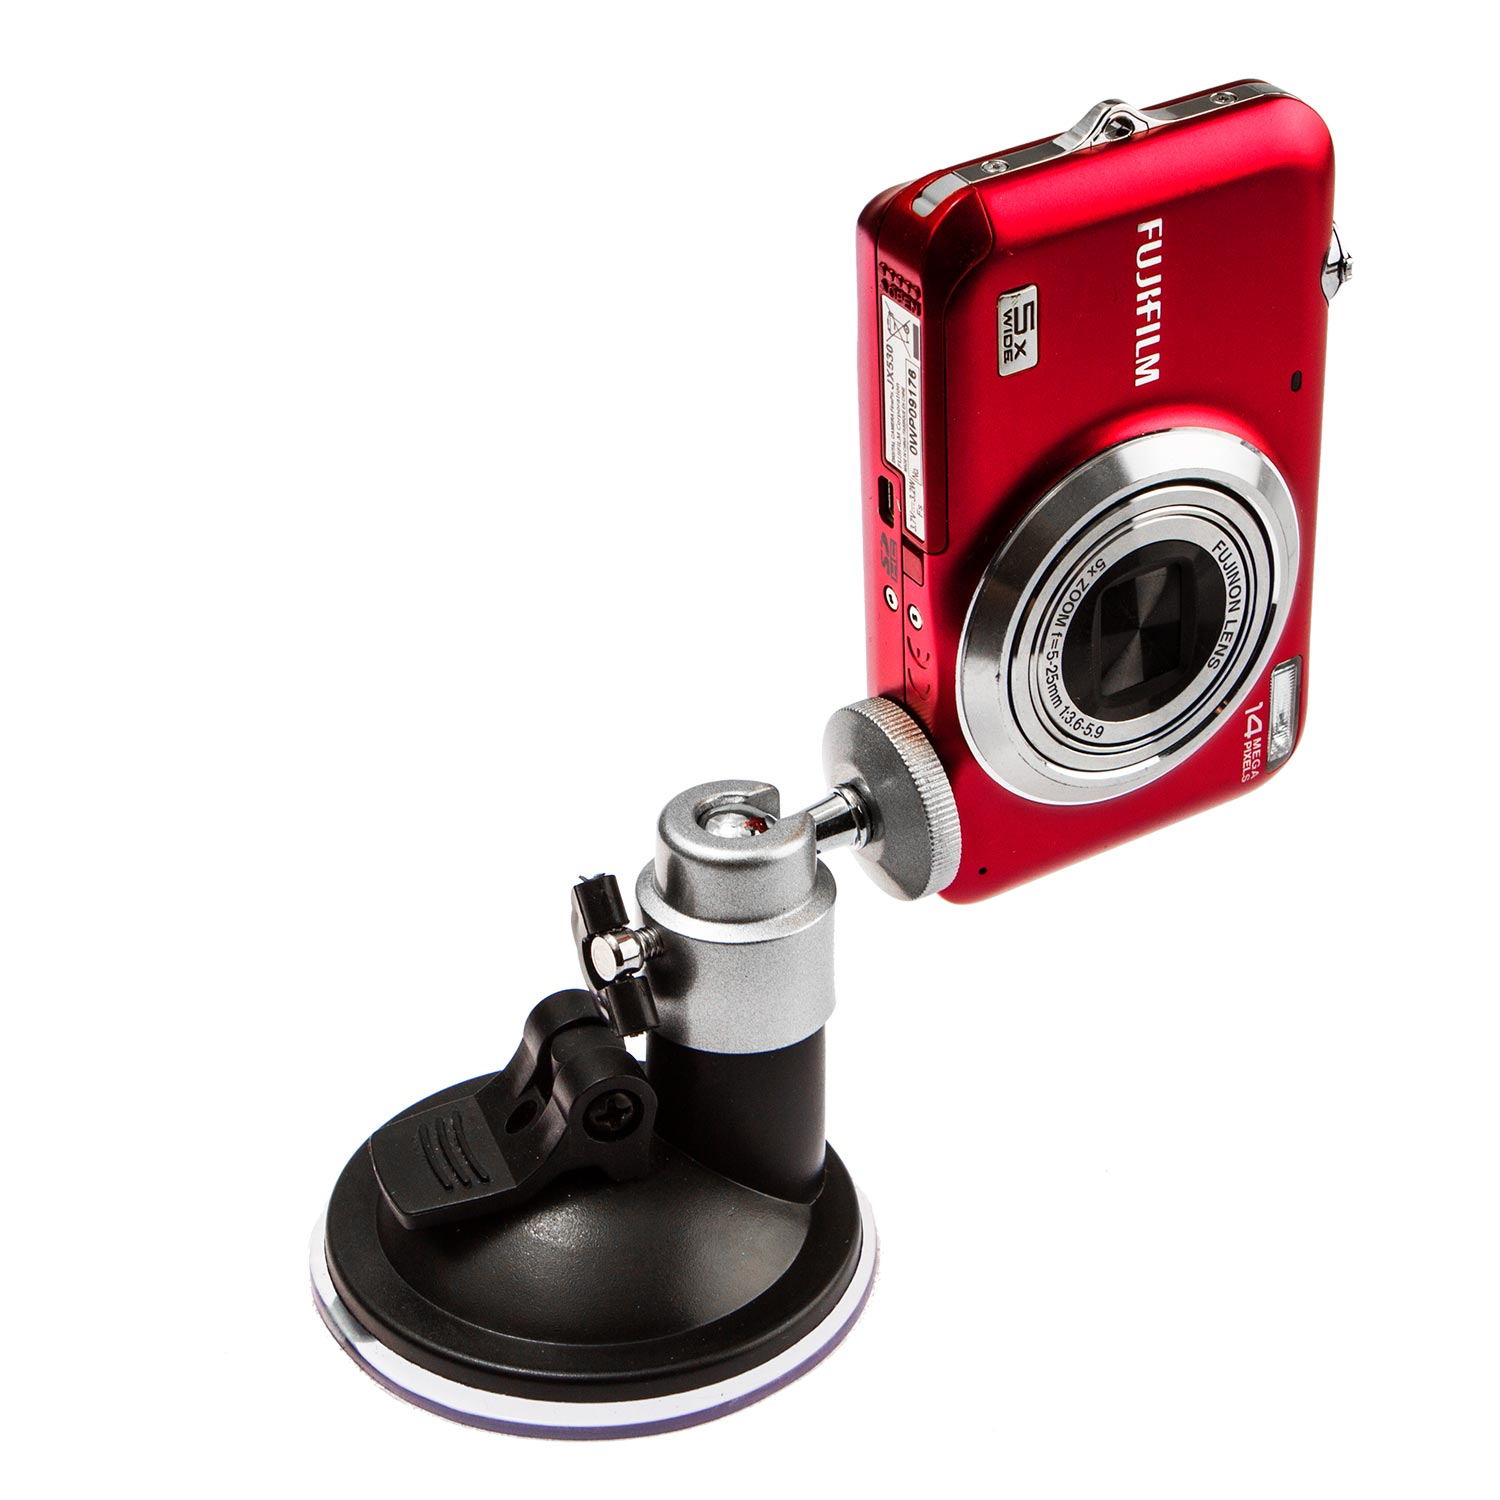 7dayshop Tripods  Camcorder Compact Camera Action Suction Cup Mount